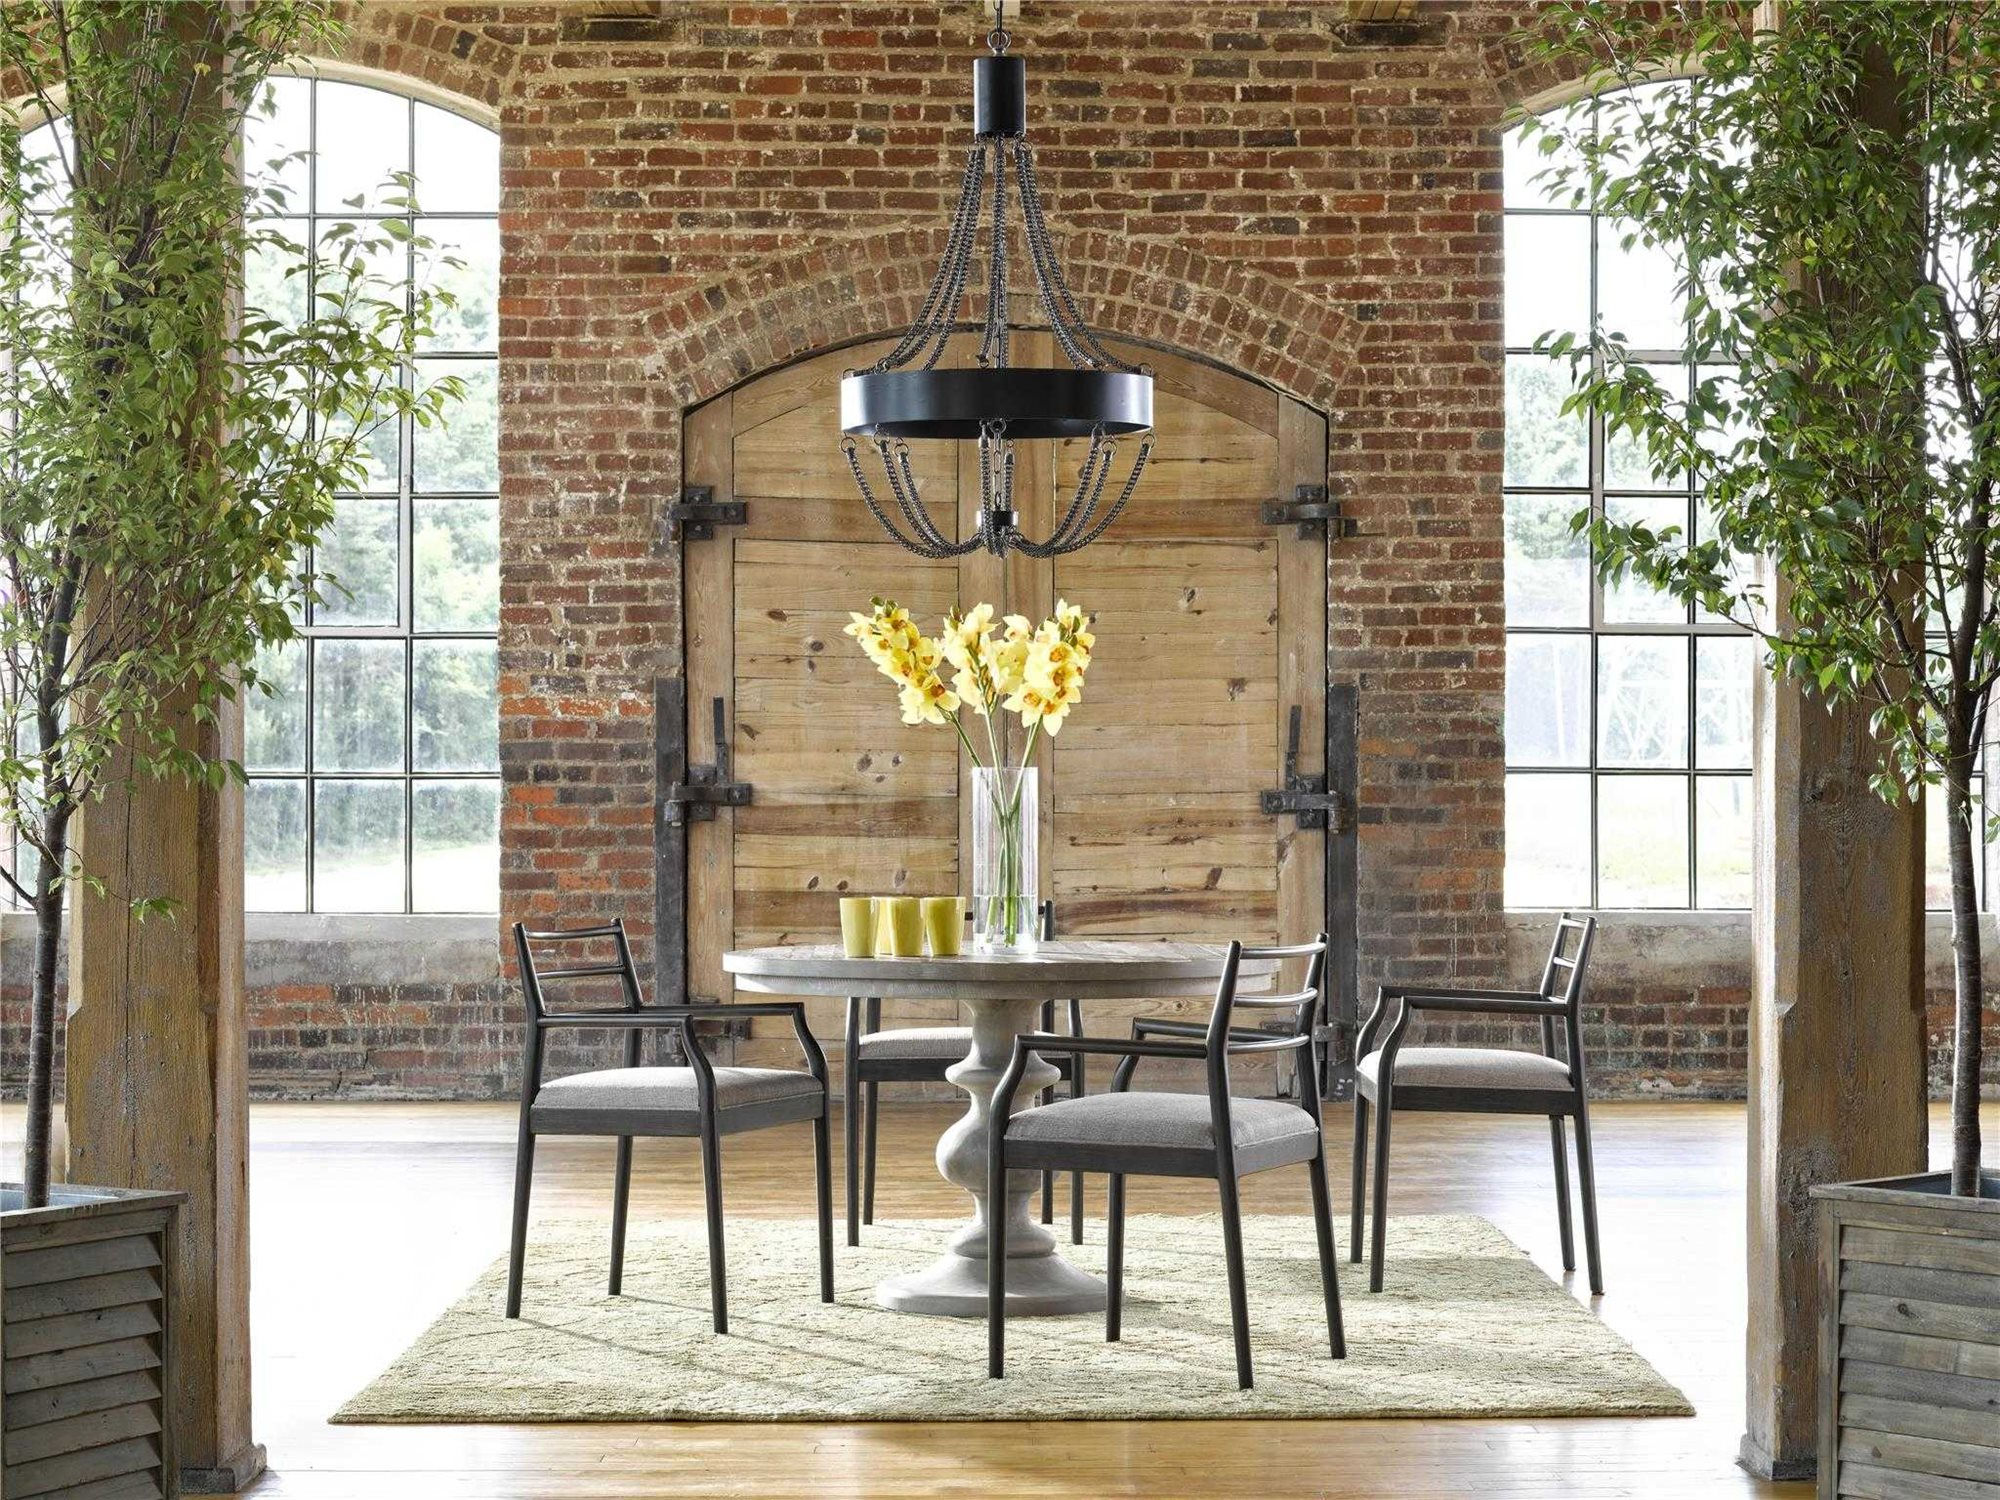 Universal furniture curated dining room set uf751757aset1 - Universal furniture dining room set ...